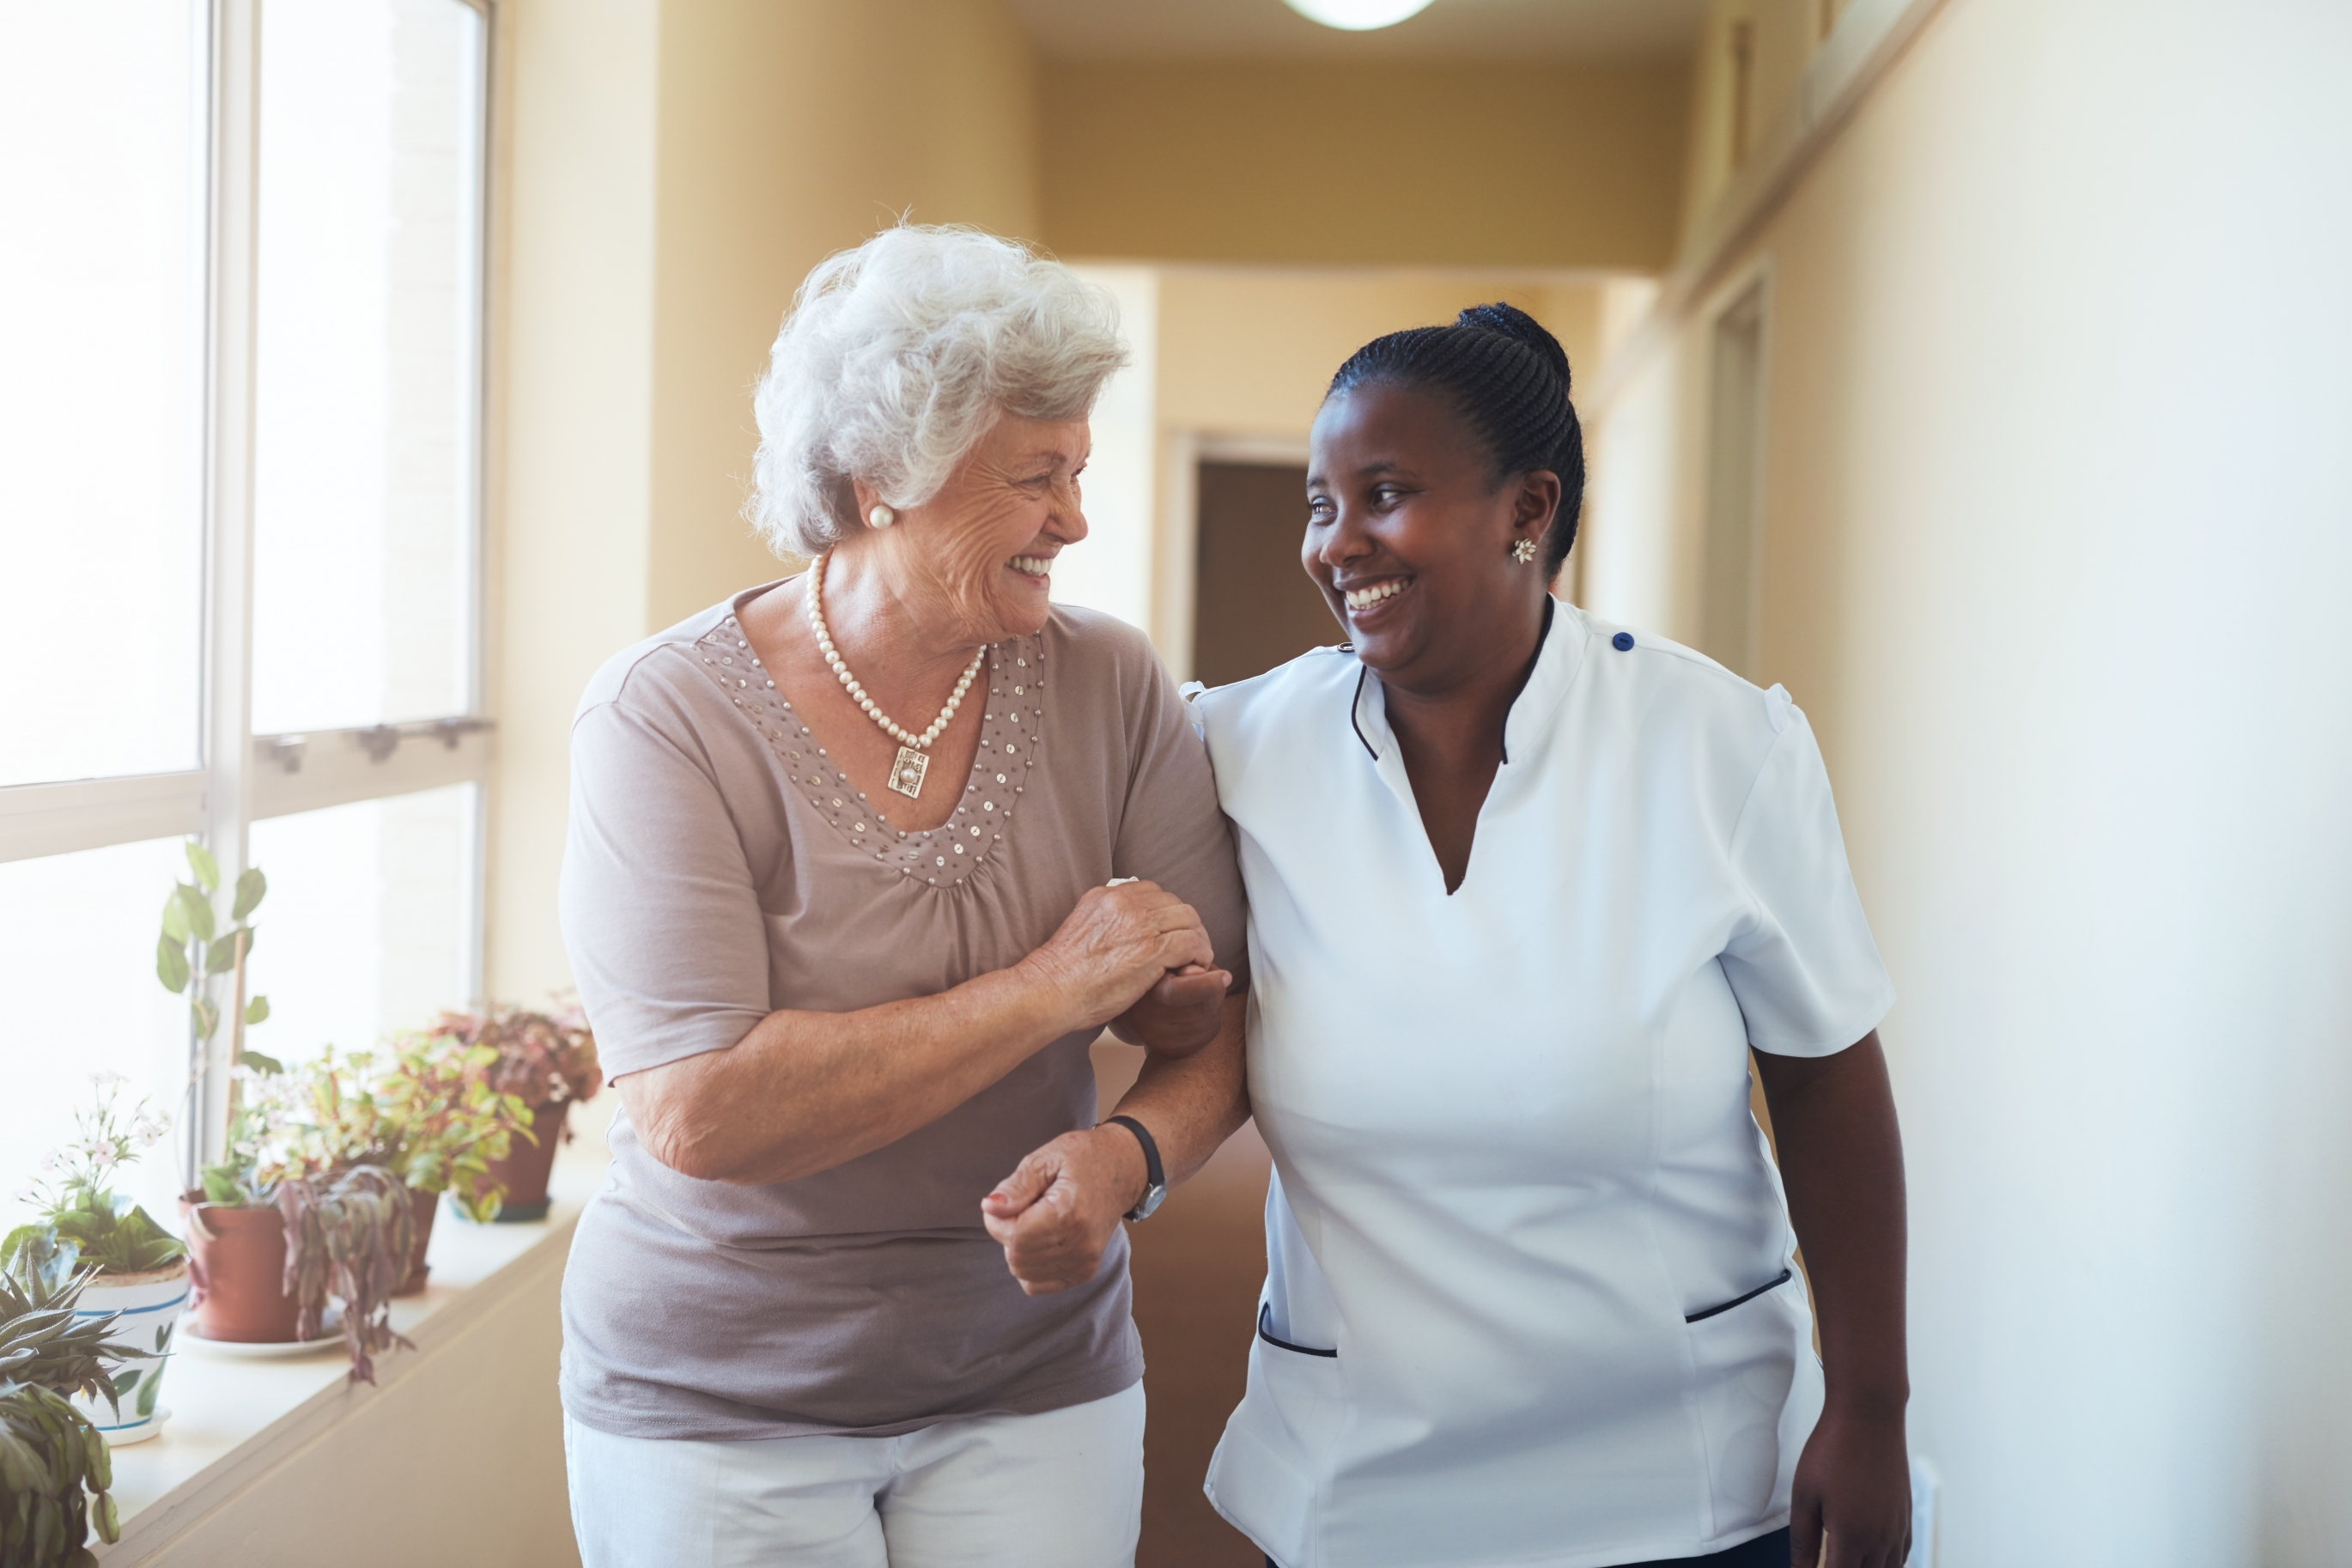 Smiling Home Caregiver And Senior Woman Walking Together.jpg